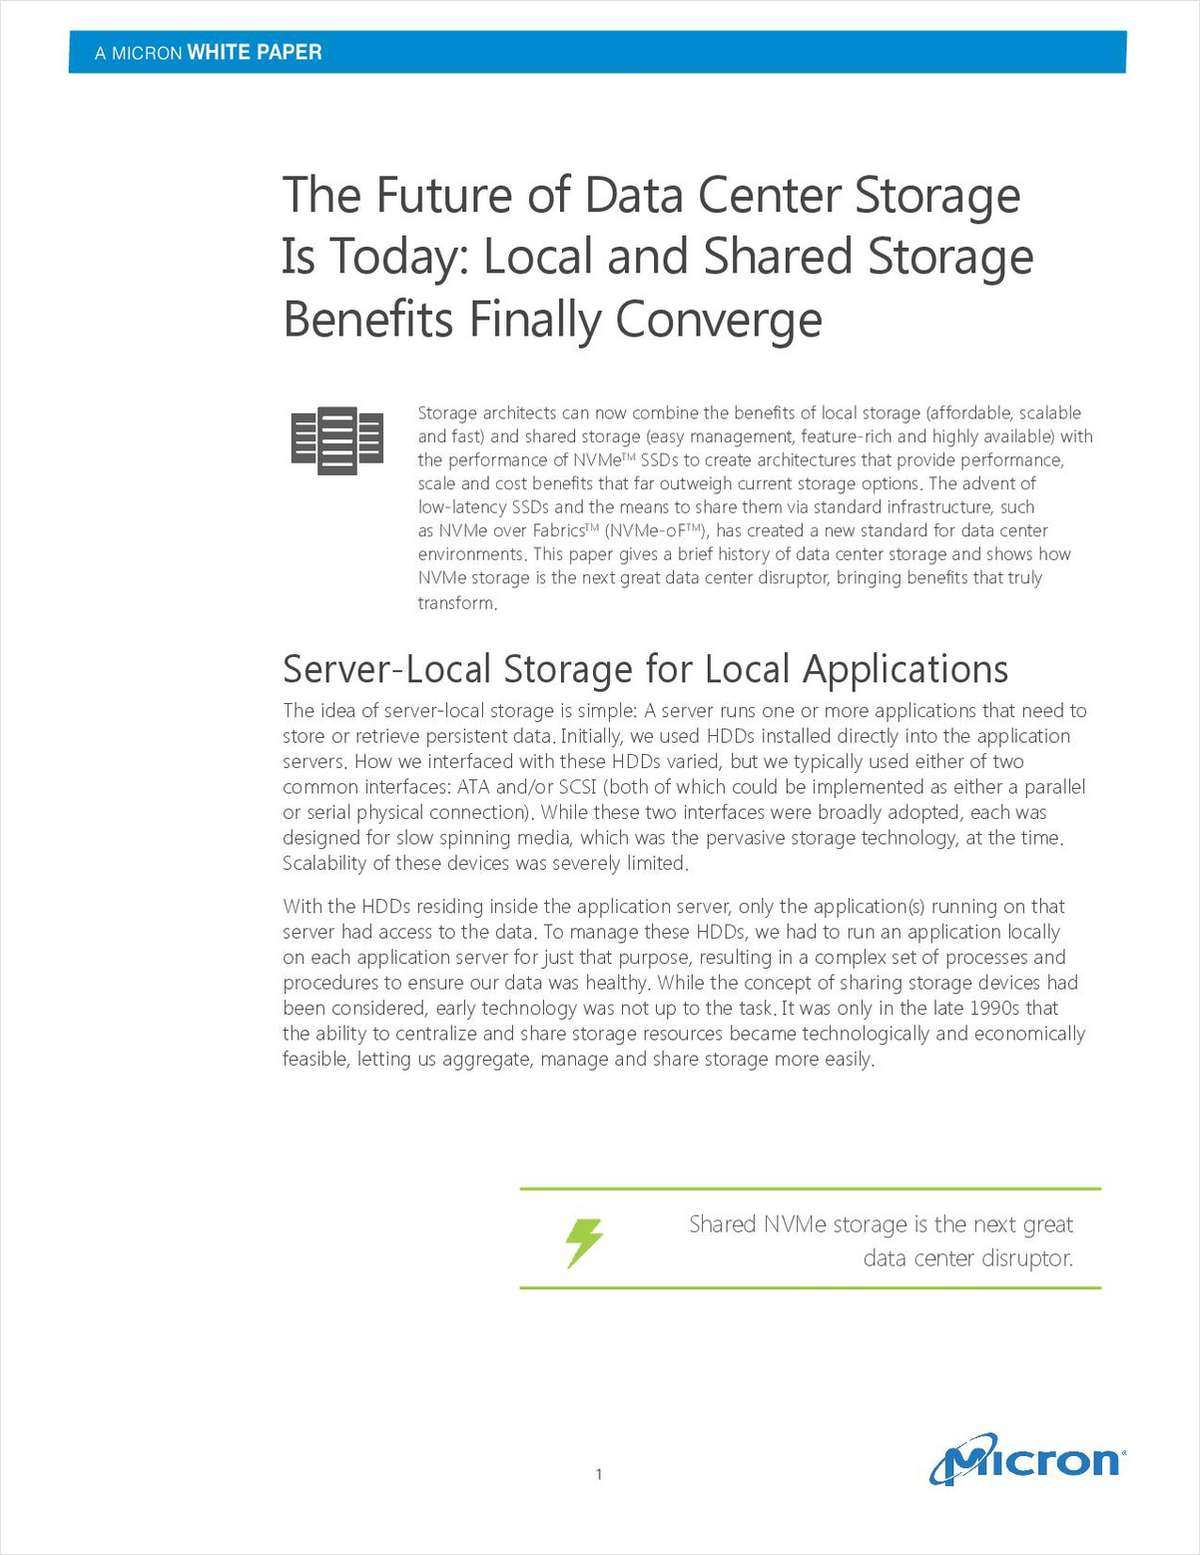 The Future of Data Center Storage is Today: Local and Shared Storage Benefits Finally Converge